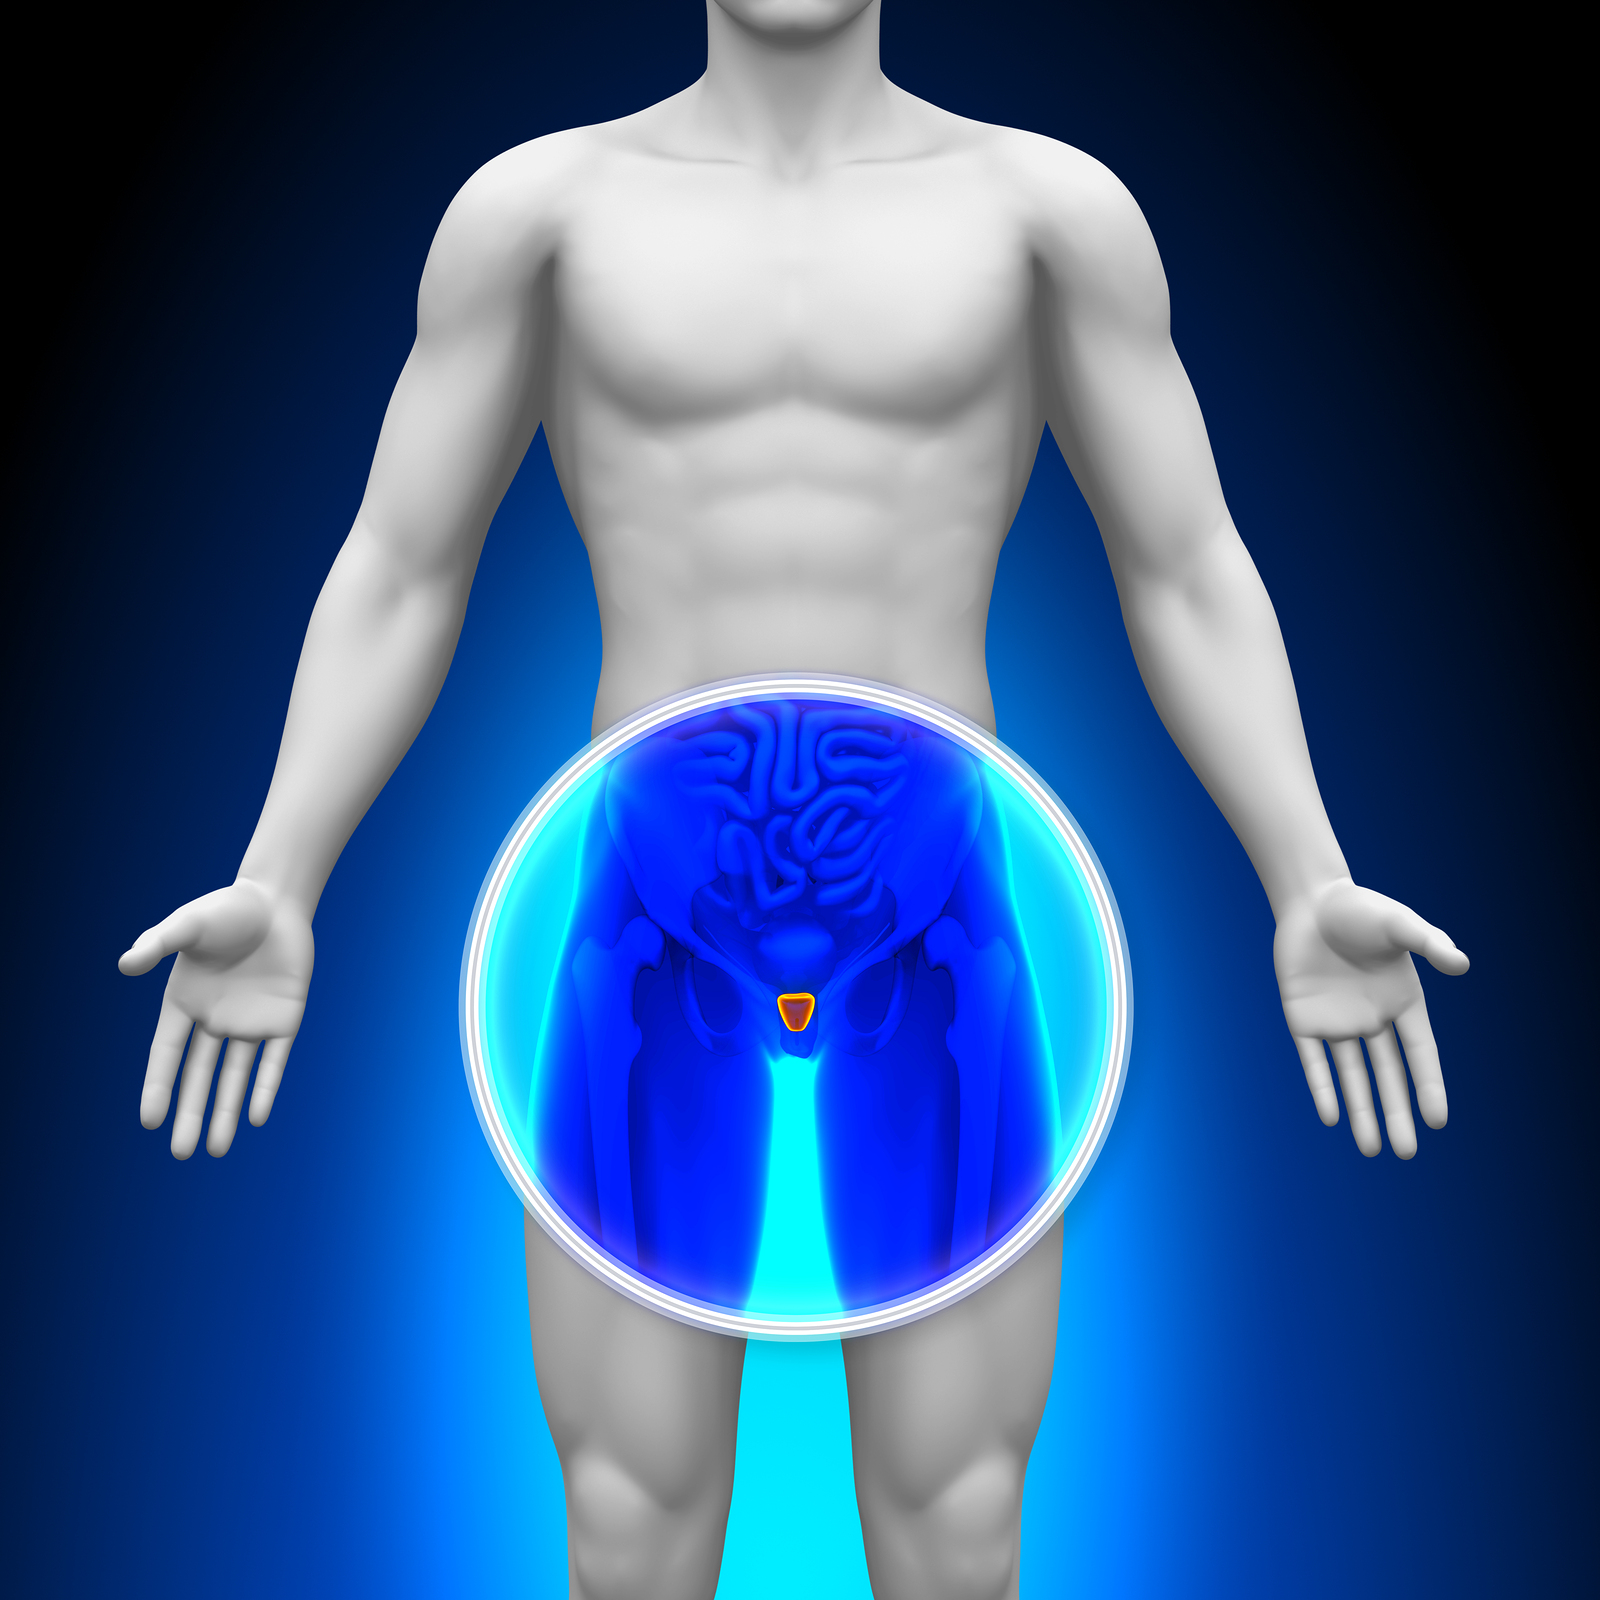 bigstock-Medical-X-Ray-Scan--Prostate-47708338